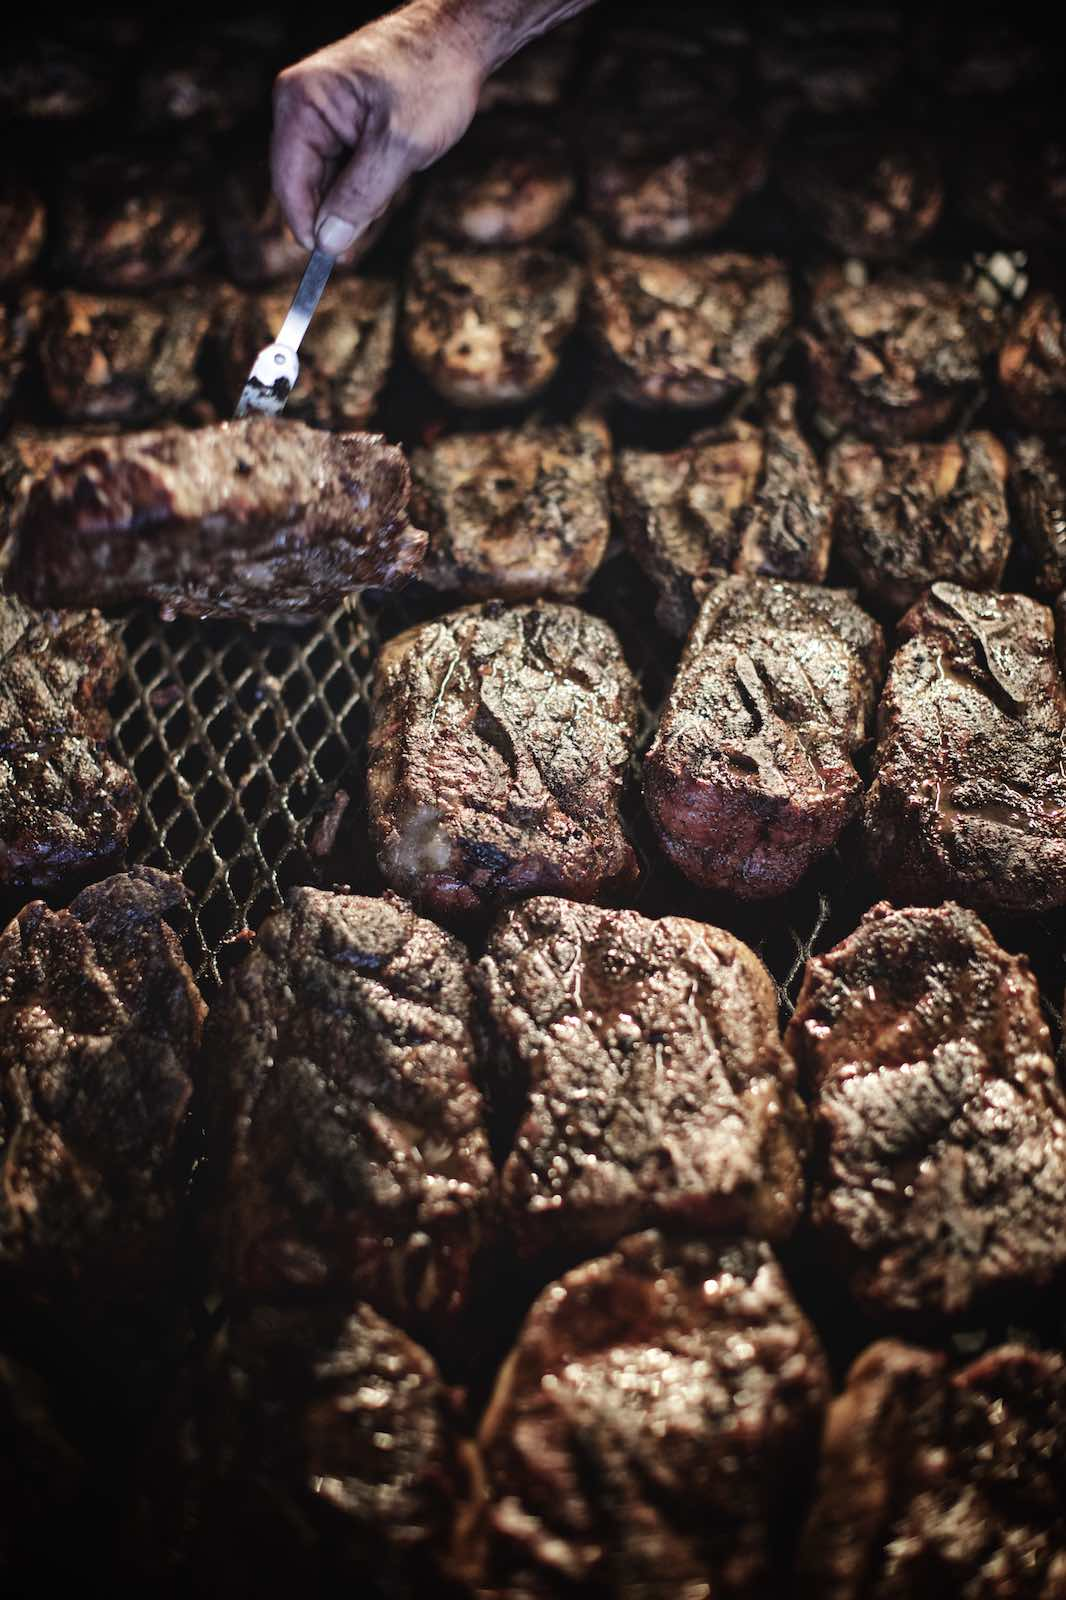 Jody Horton Photography - Various cuts of beef cooking on a grill grate.